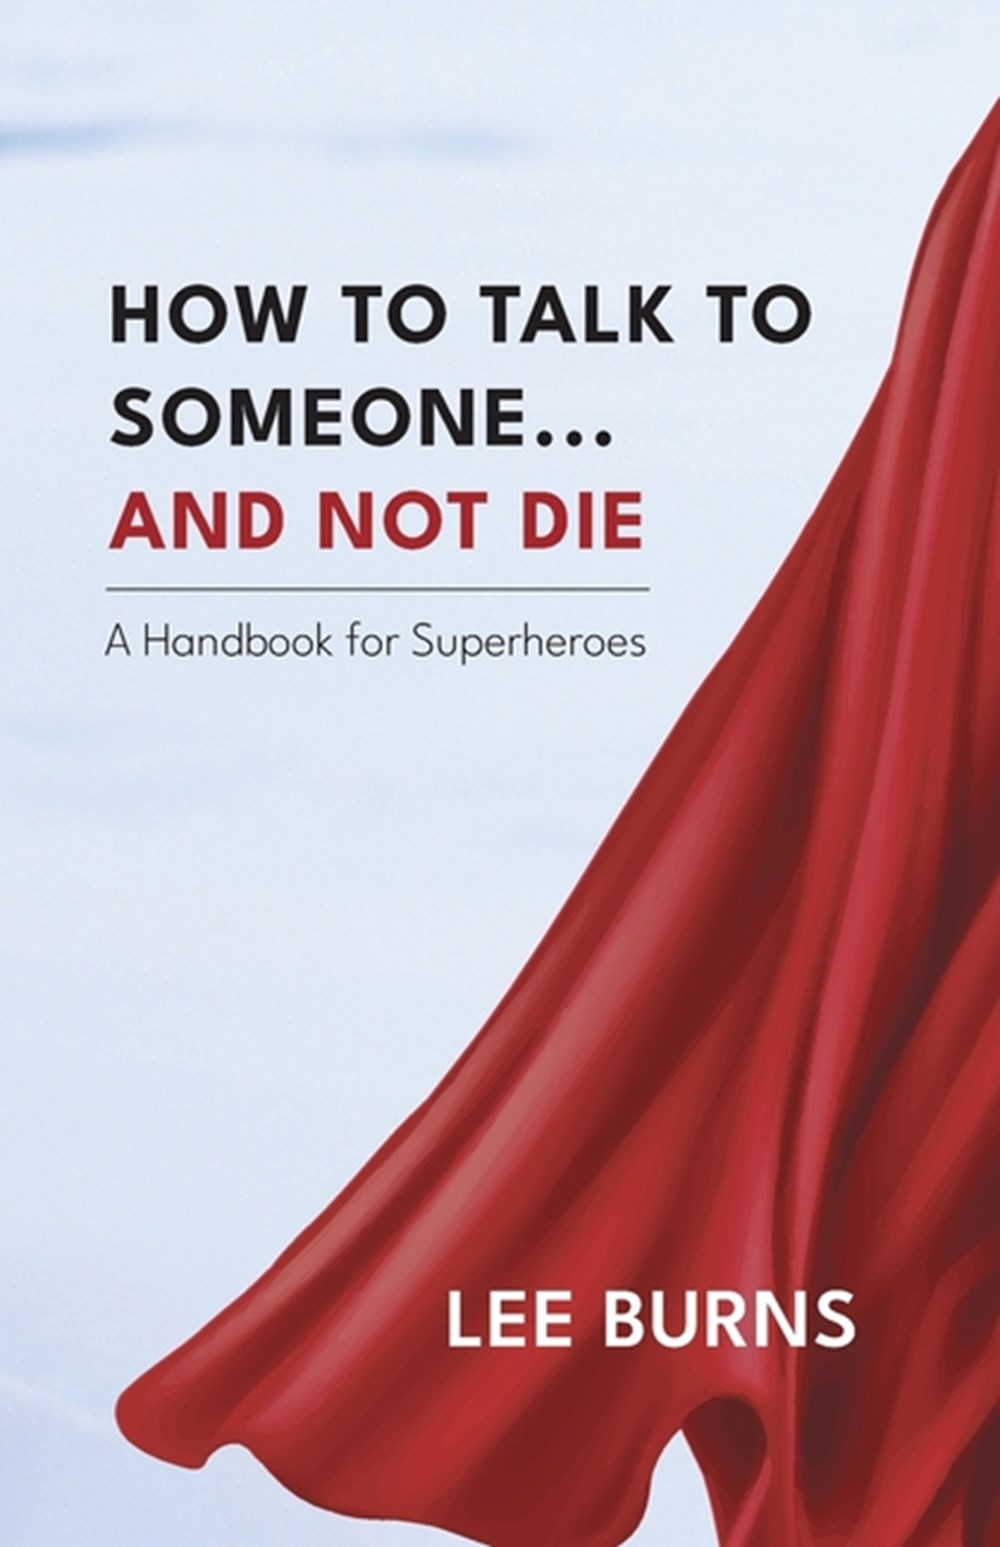 How To Talk To Someone And Not Die A Handbook for Superheroes